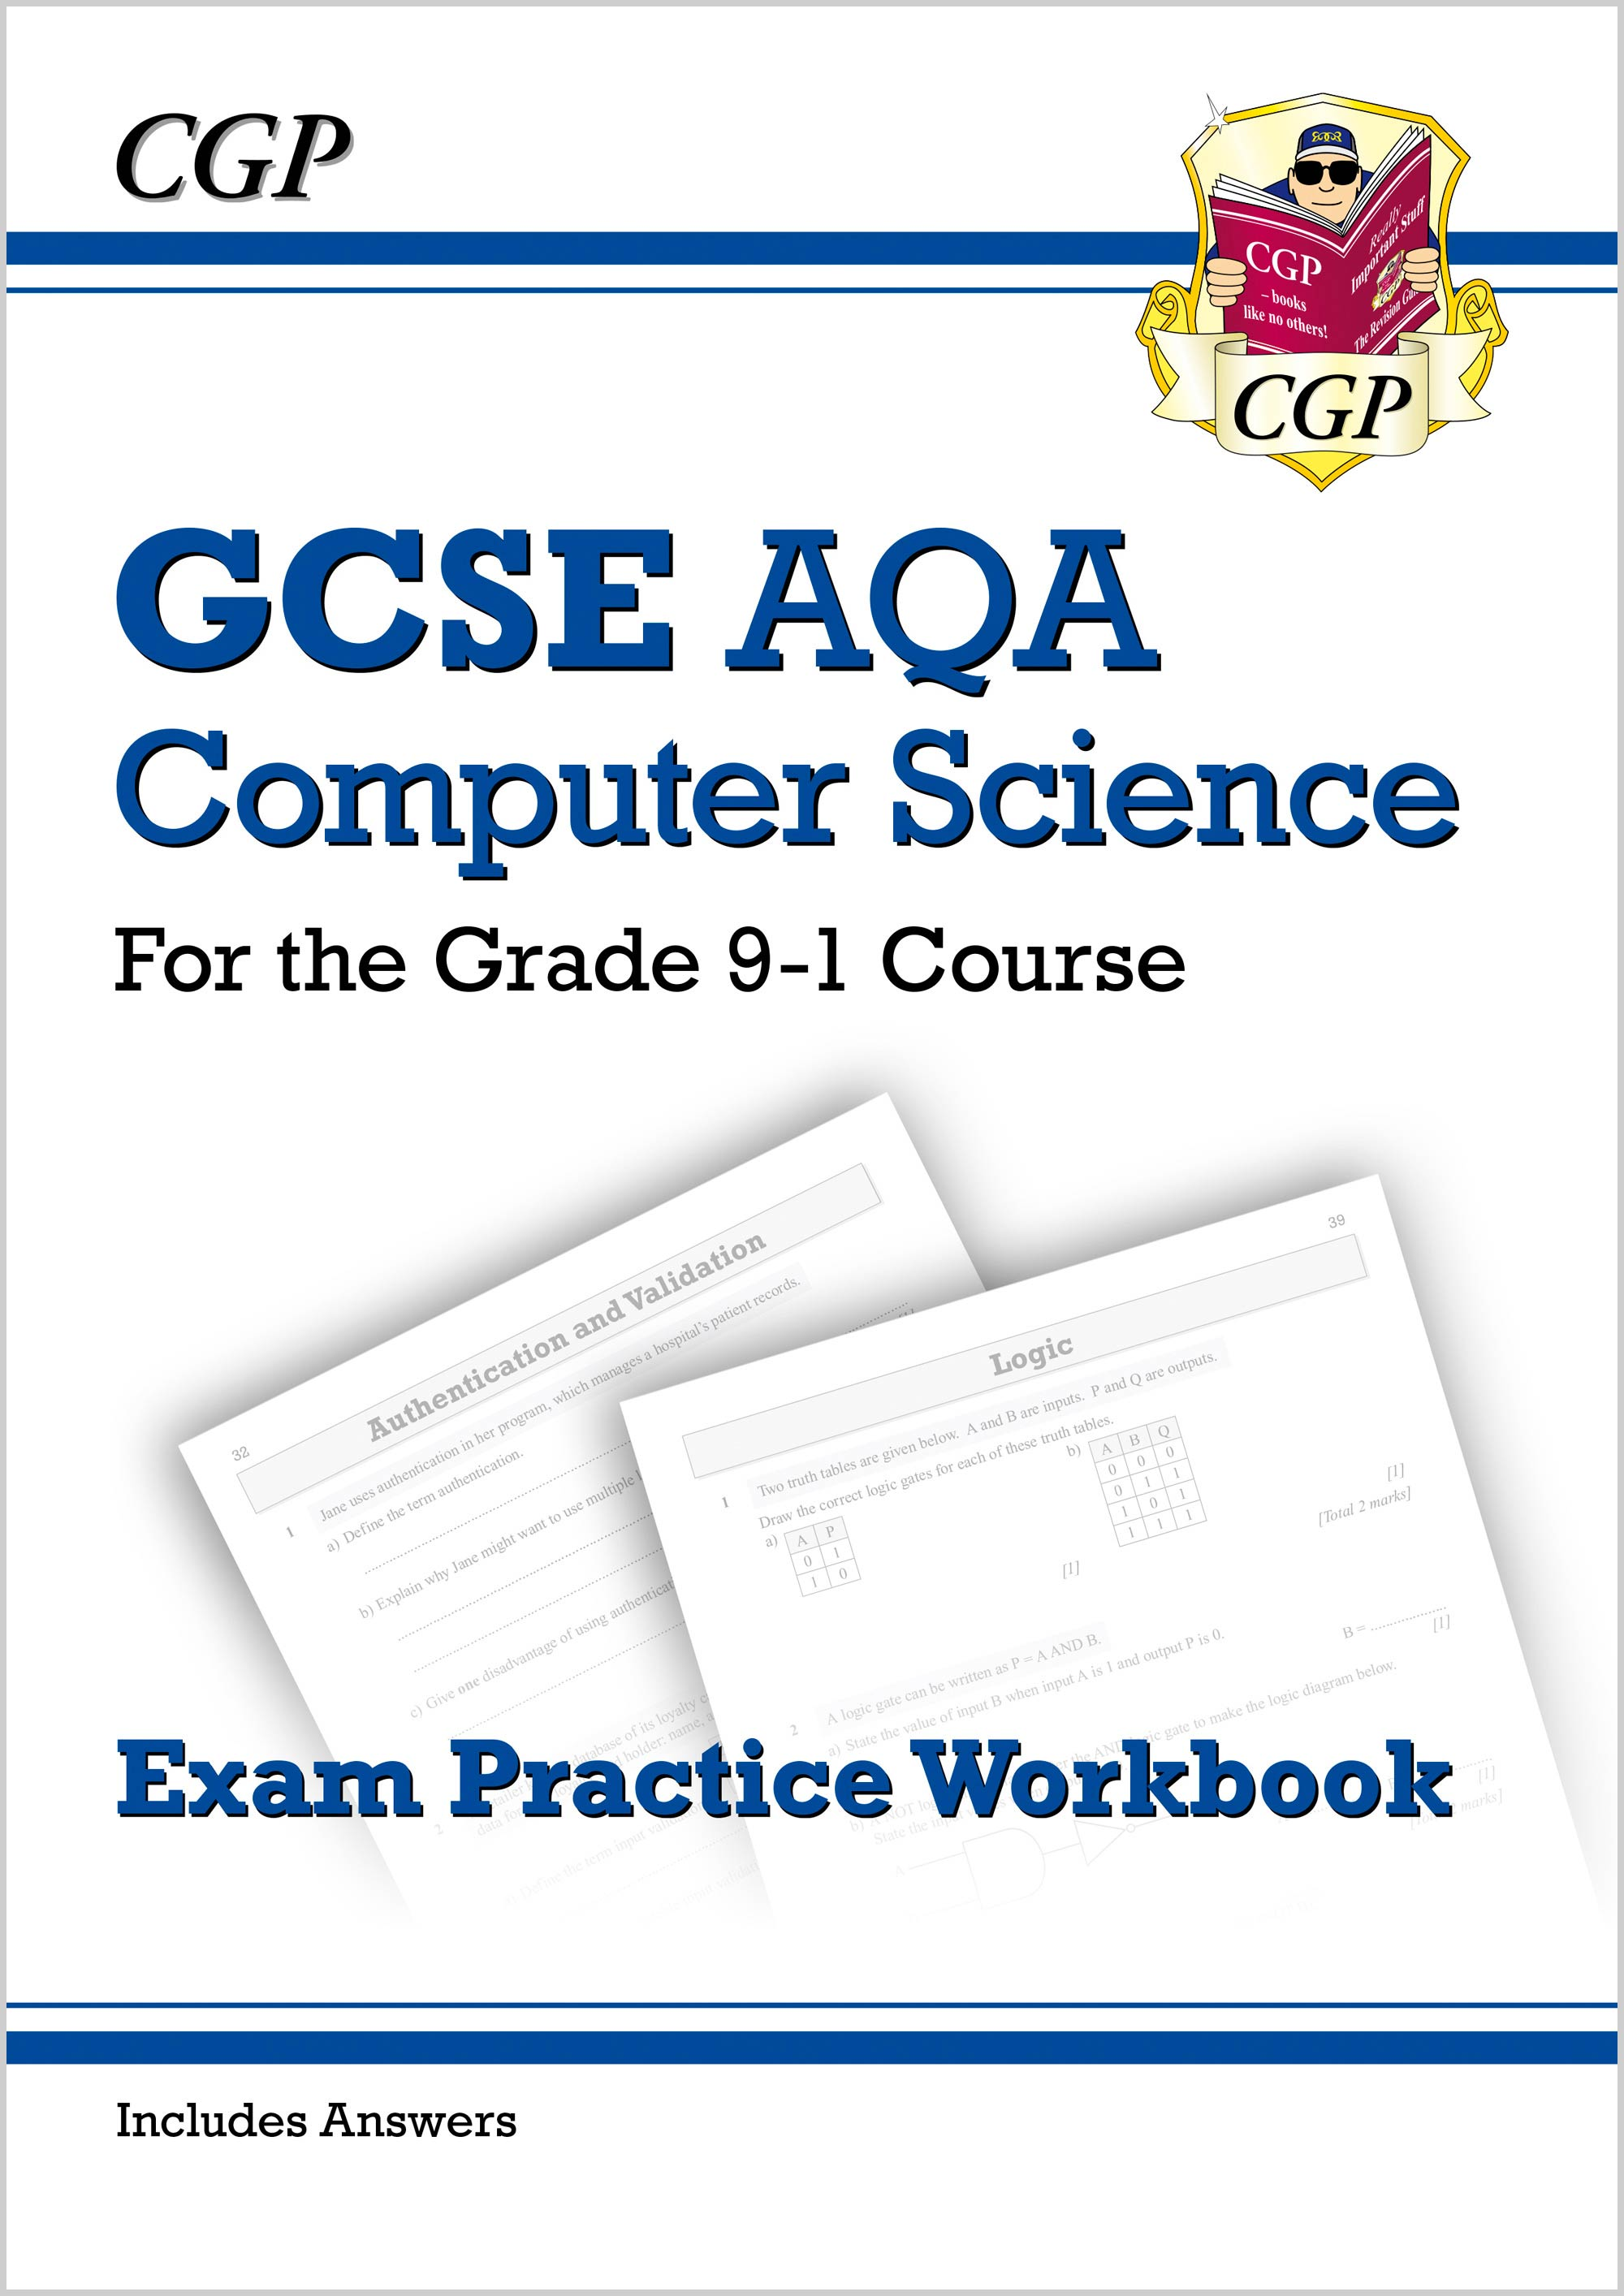 COAQ41DK - New GCSE Computer Science AQA Exam Practice Workbook - for the Grade 9-1 Course (includes